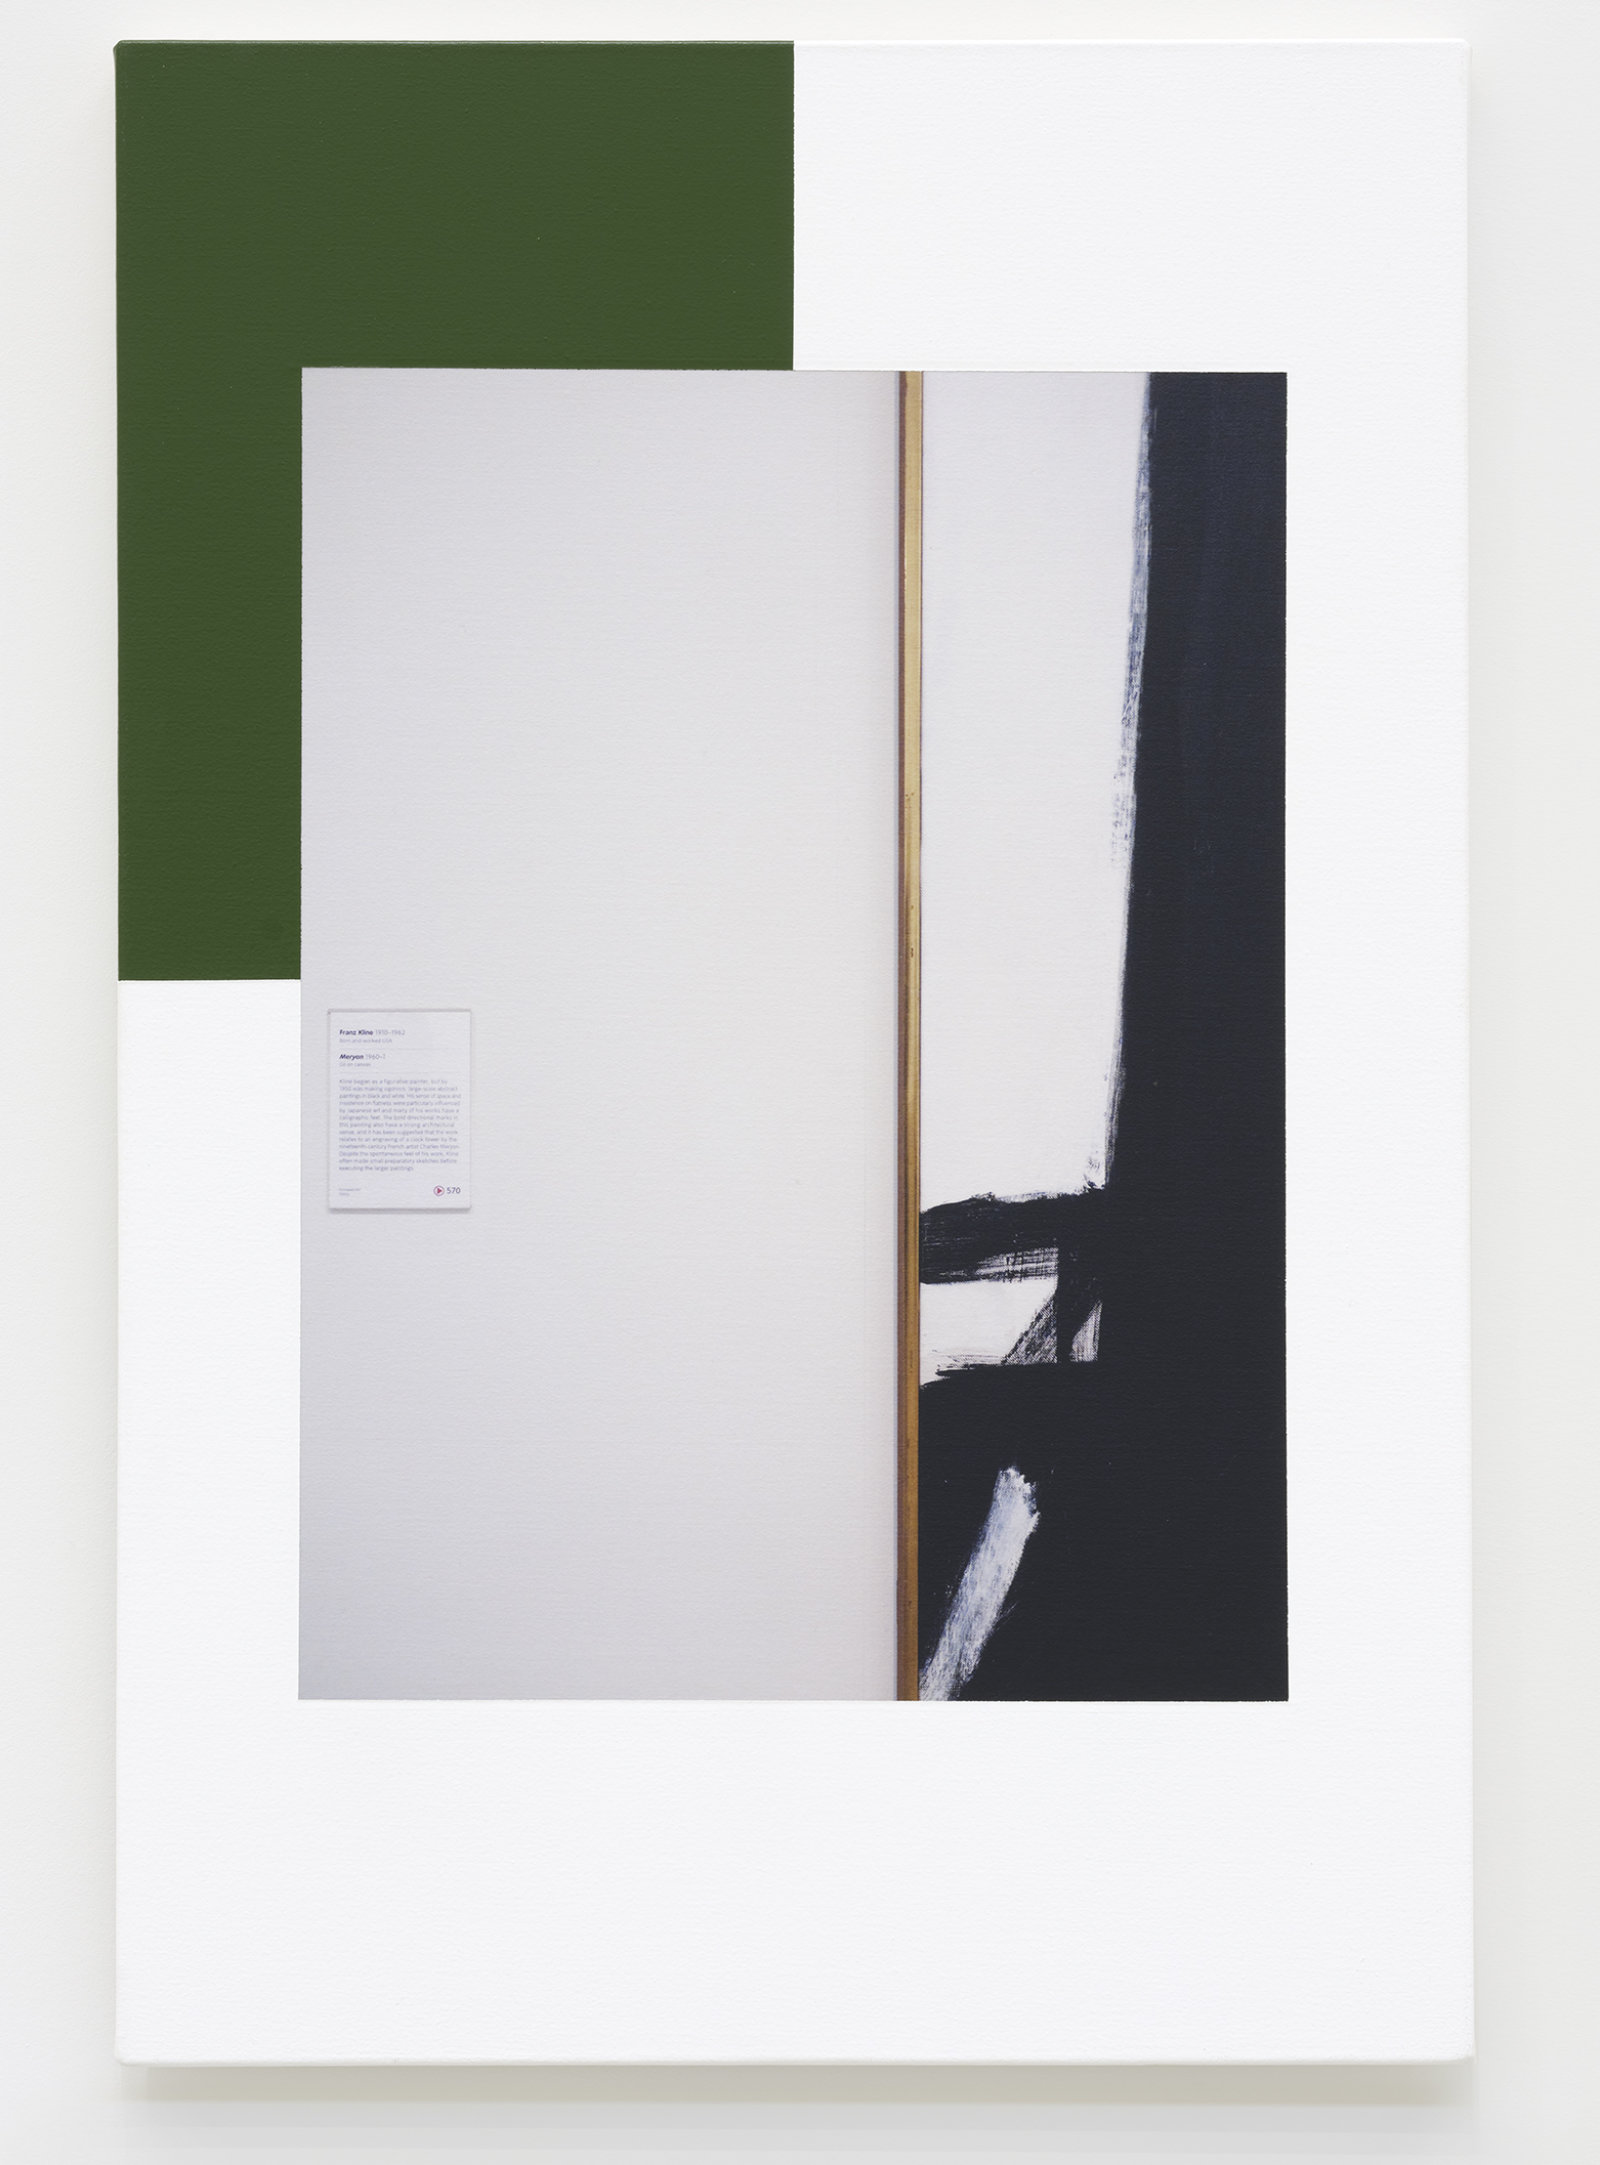 Ian Wallace, Abstract Composition (with Franz Kline), 2012, photolaminate with acrylic on canvas, 36 x 24 in. (91 x 61 cm) by Ian Wallace